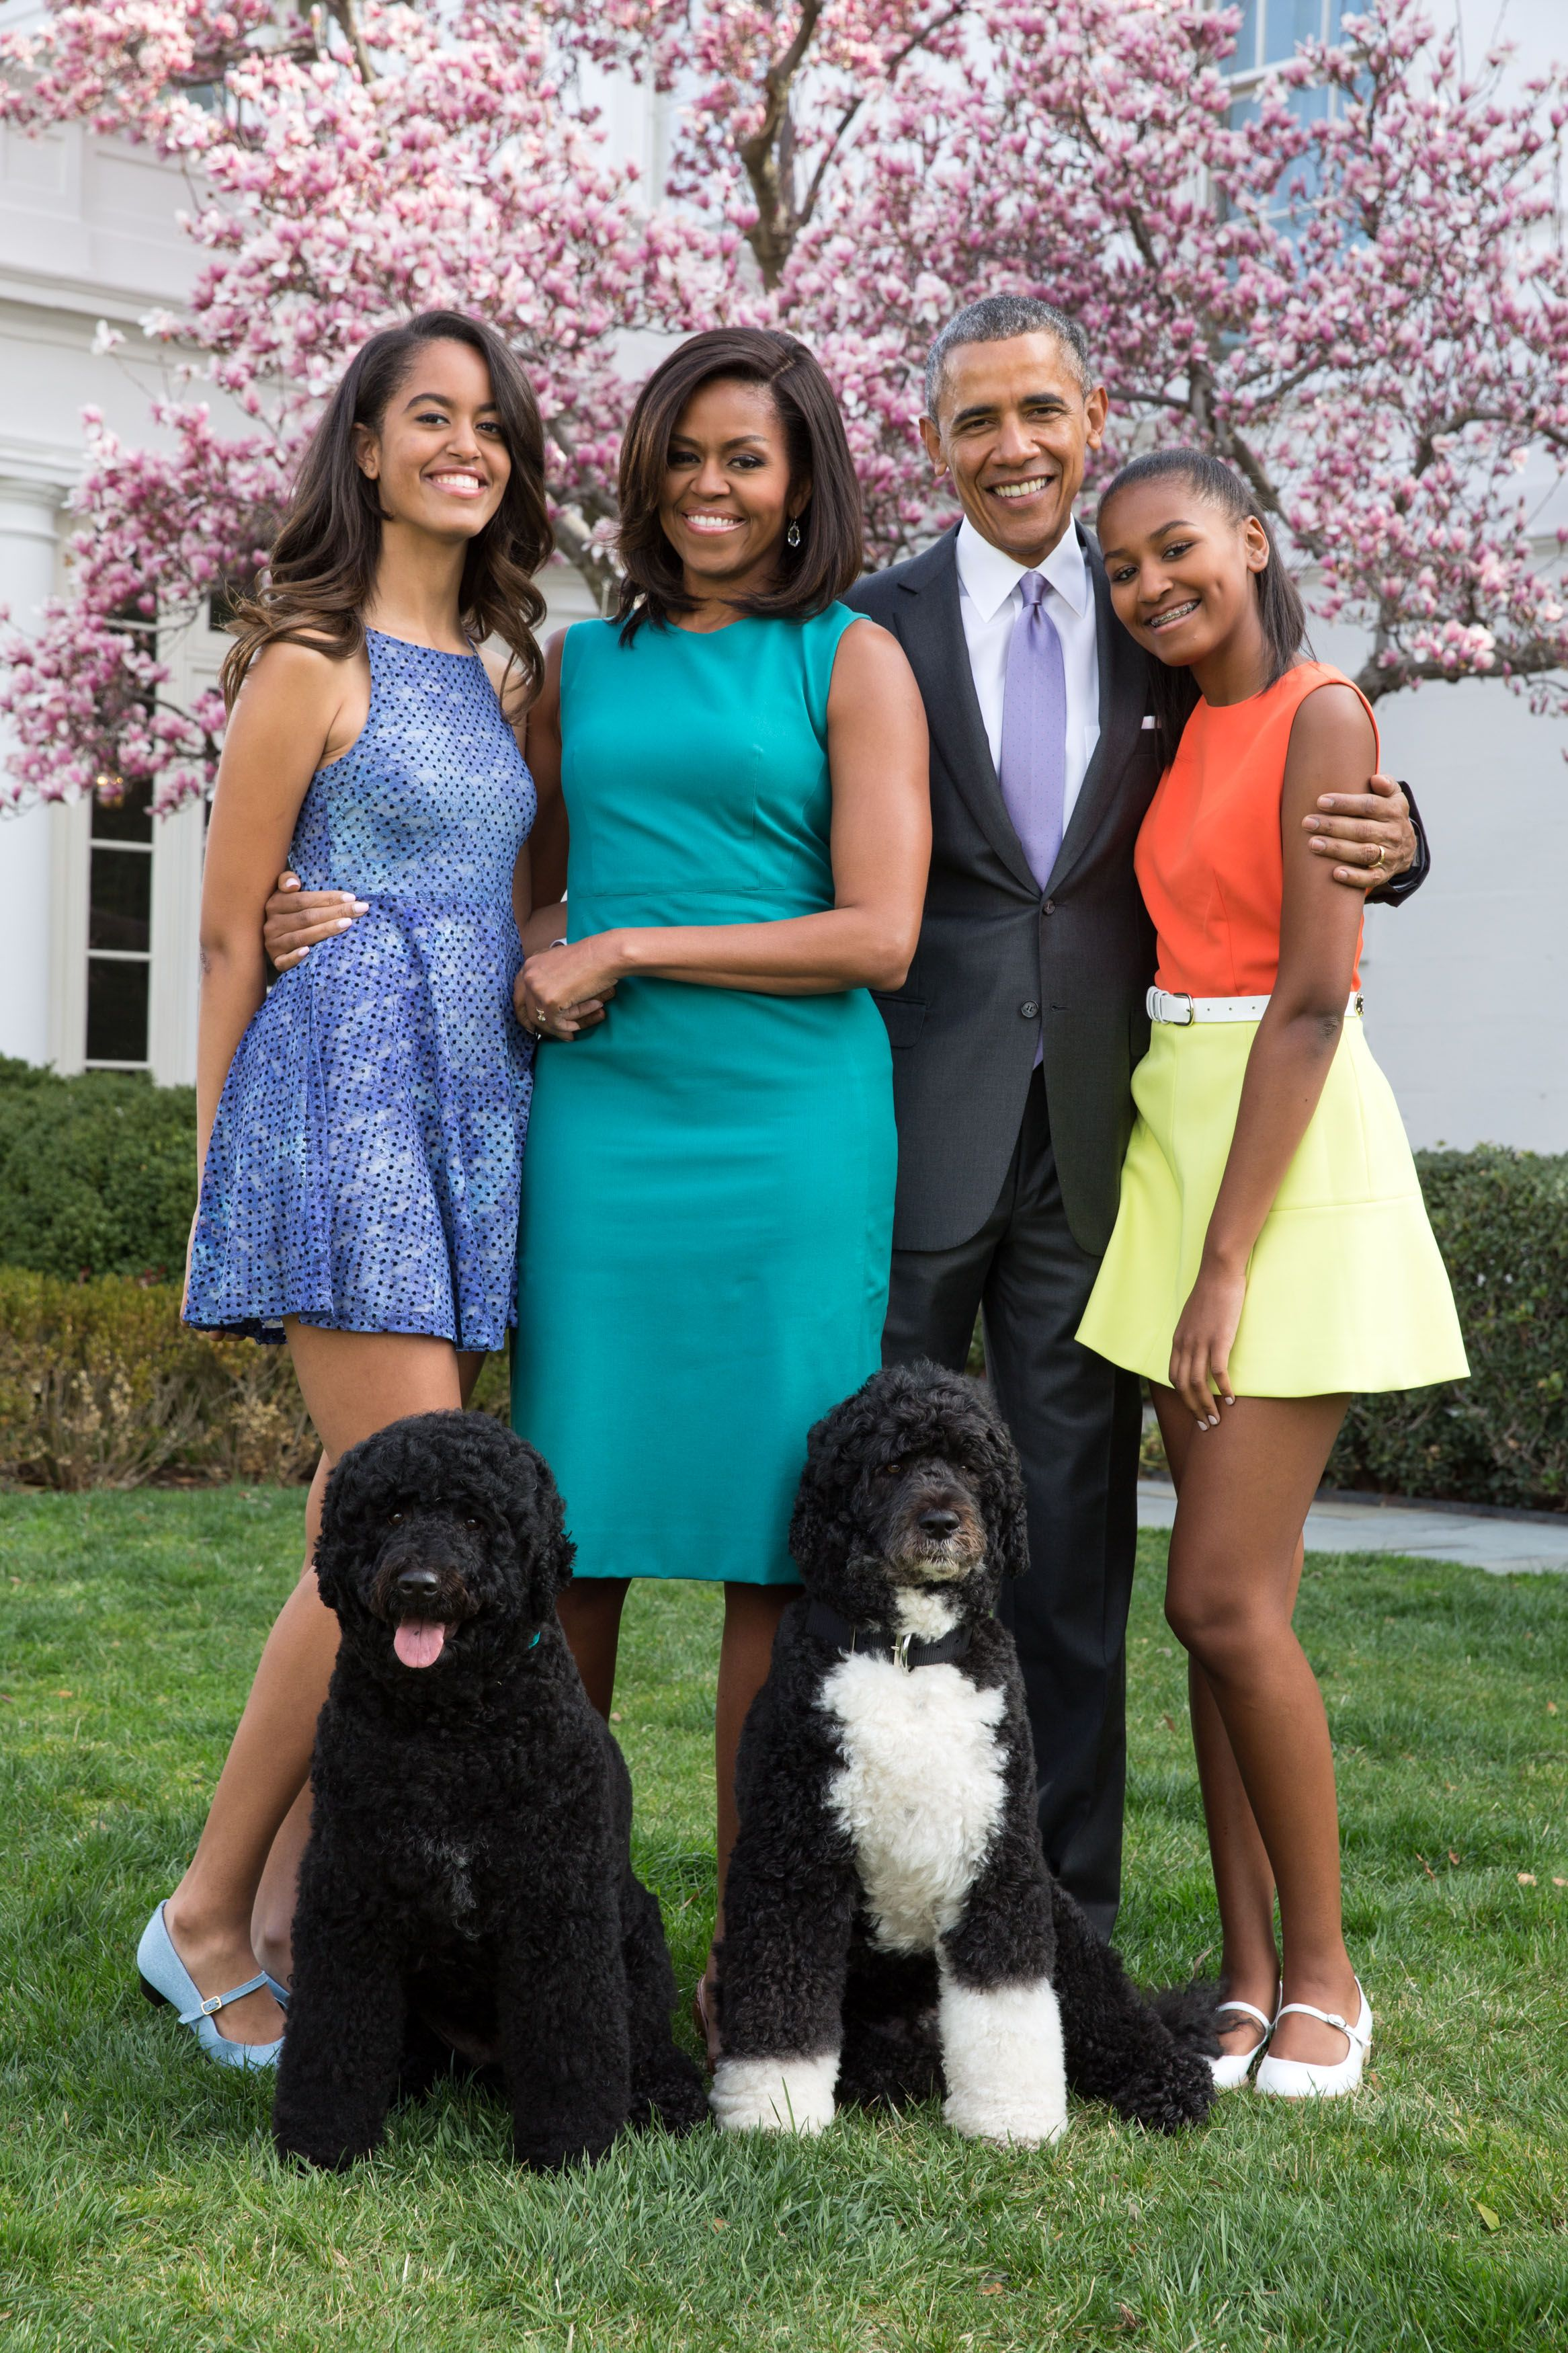 Presidential family Malia, Michelle, Barrack, and Sasha Obama pose for a family portrait with their dogs Bo and Sunny in the White House Rose Garden on April 5, 2015, in Washington, DC.   Photo: Pete Souza/The White House/ Getty Images